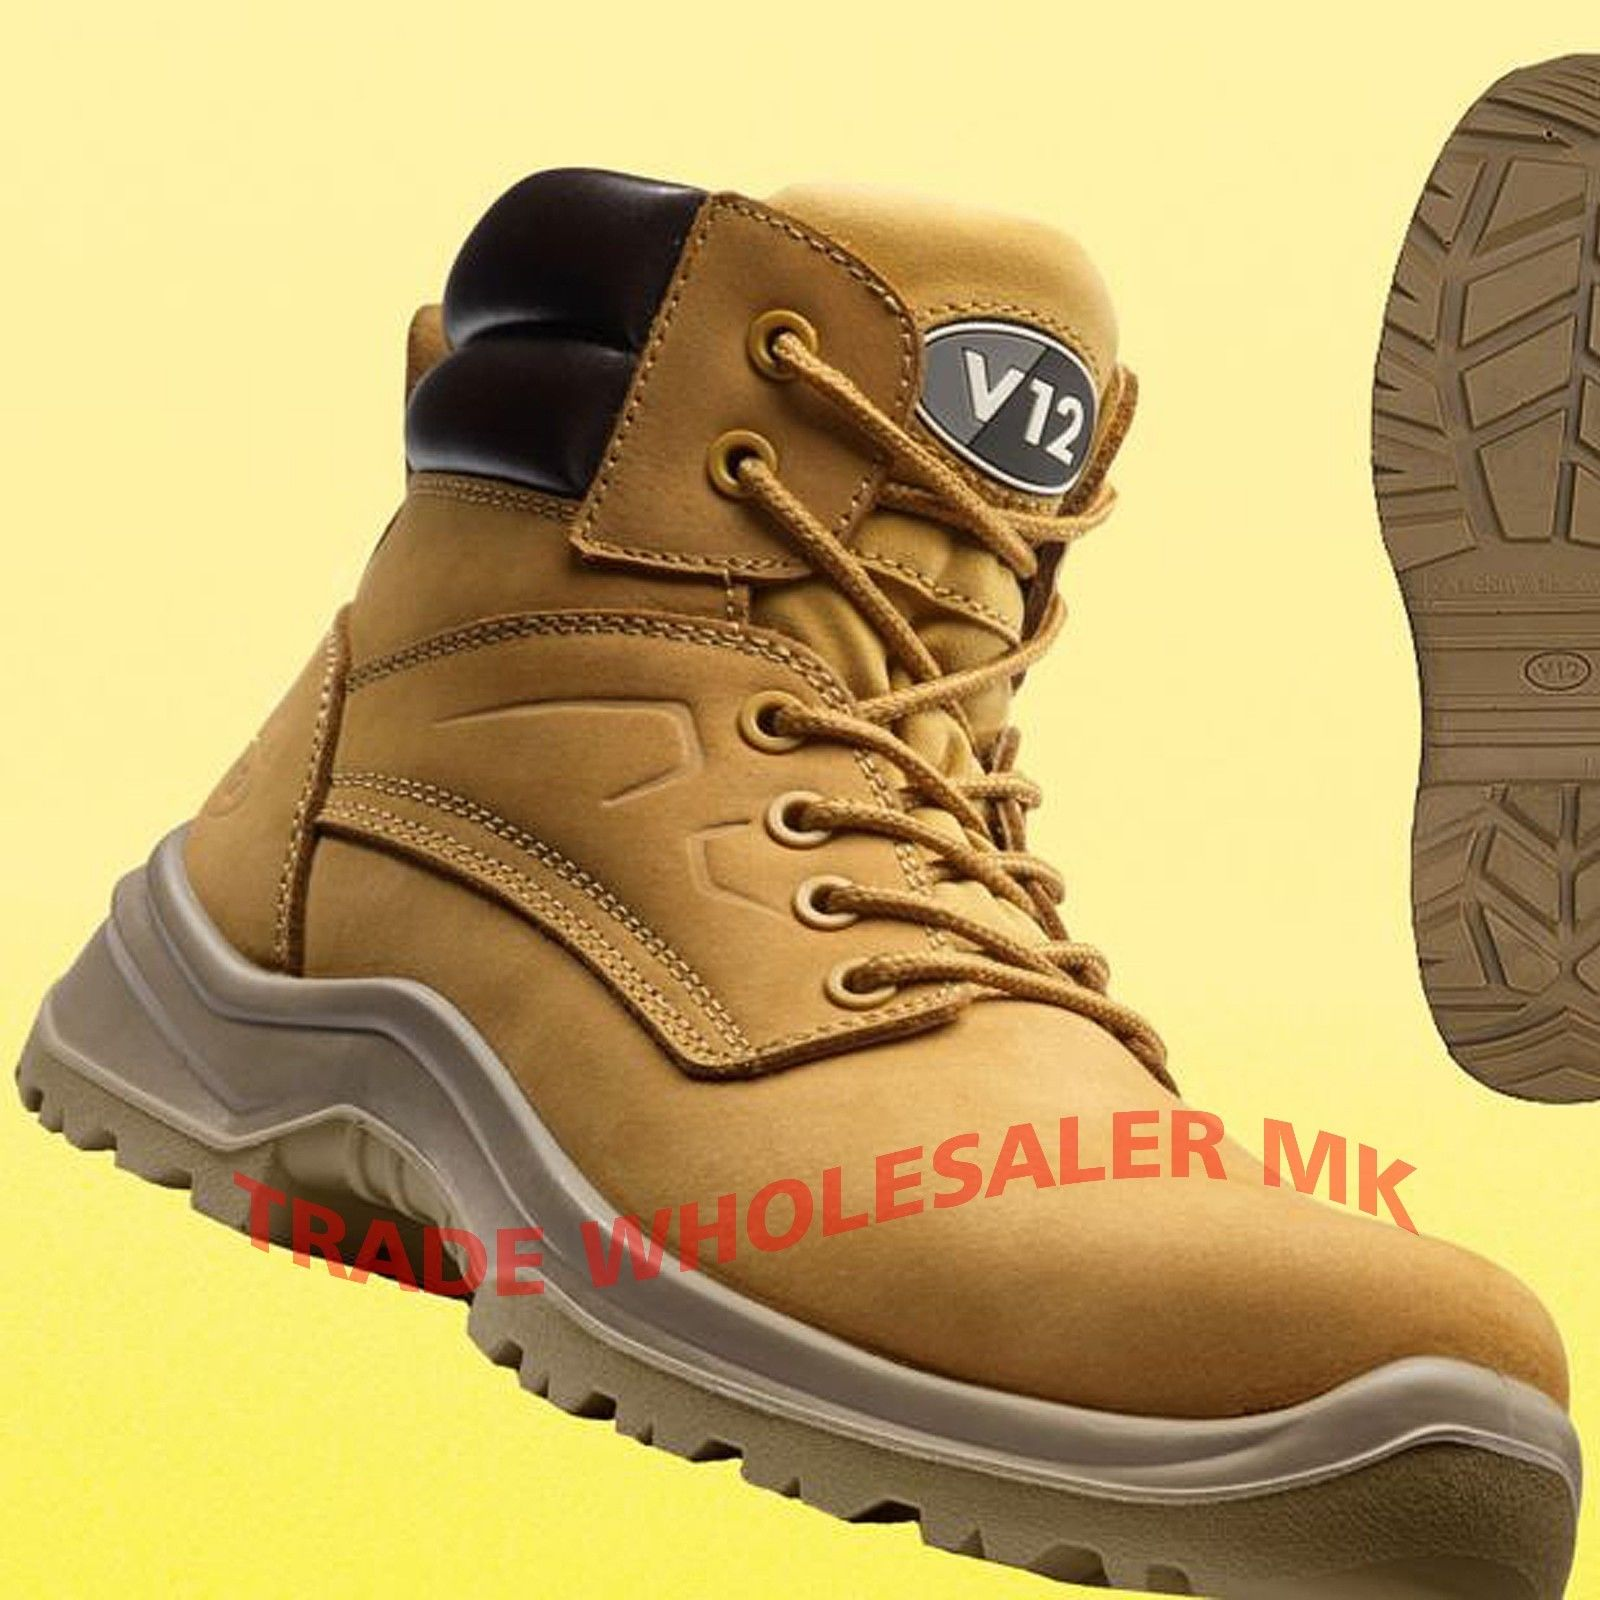 926819ec94f V12 BOBCAT LEATHER WORK COMPOSITE TOE CAP SAFETY BOOTS STEEL MIDSOLE